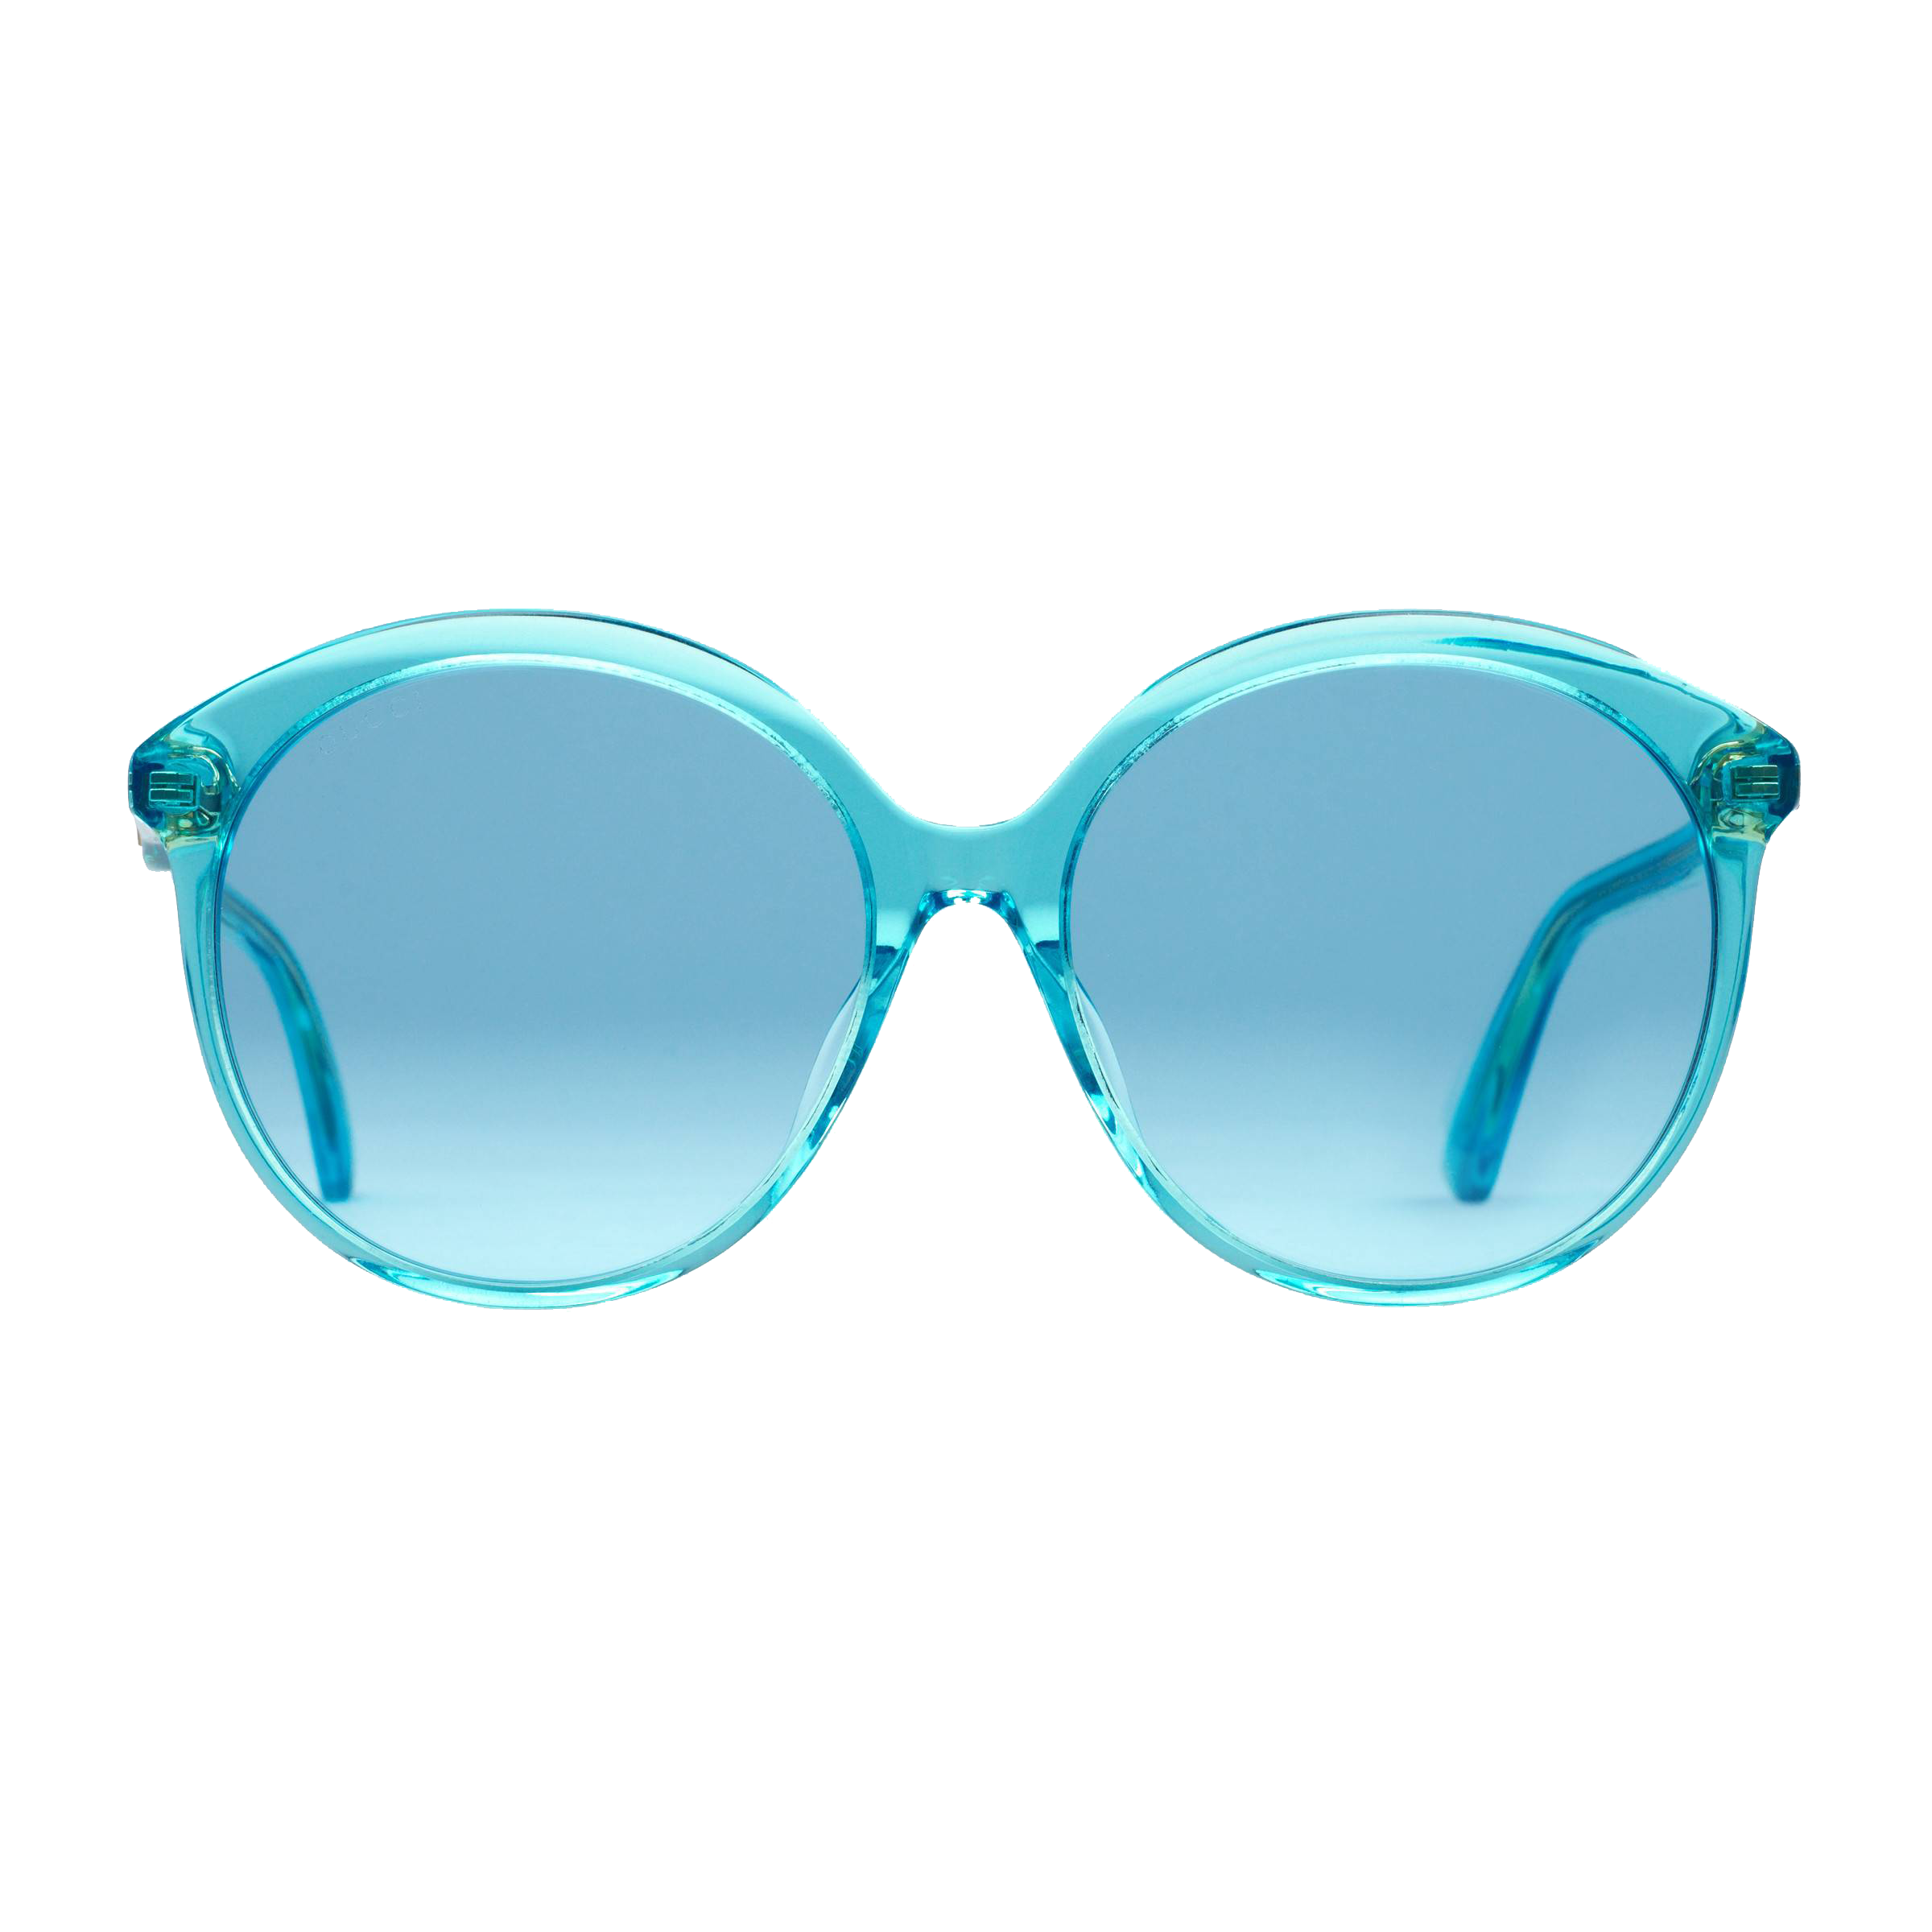 c111acc27cb Specialized fit round-frame acetate sunglasses